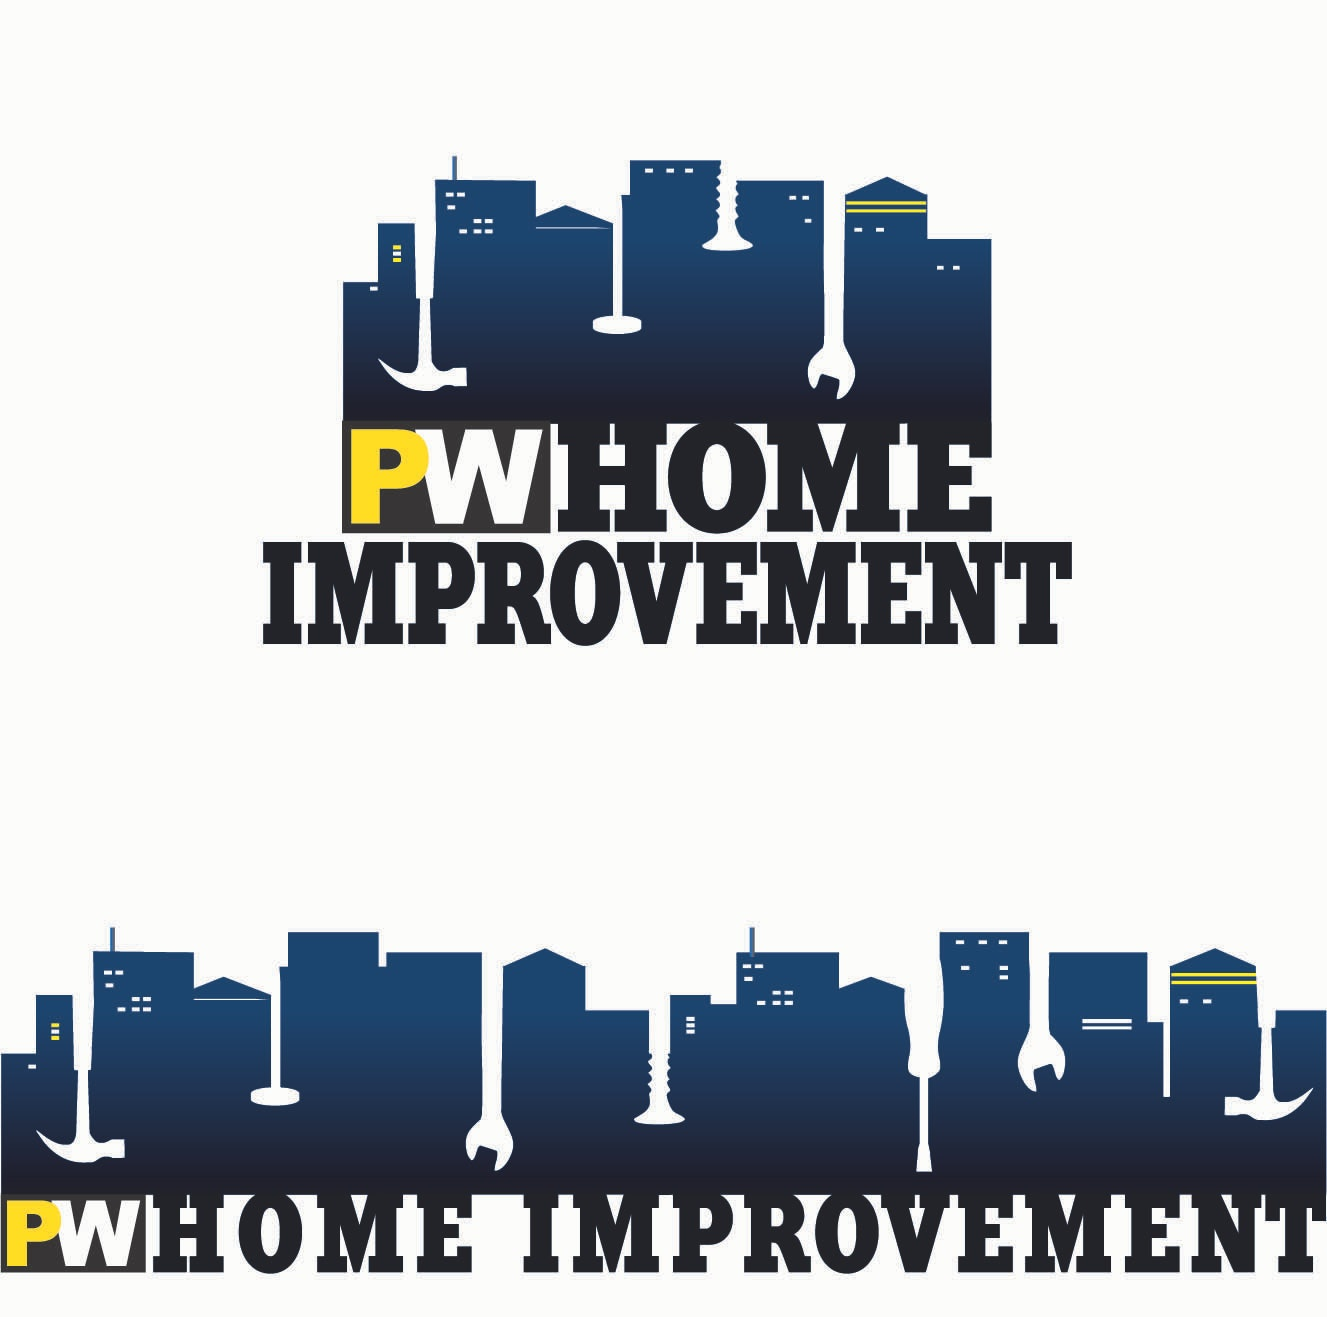 Final Home Improvements Logo Design Part 13